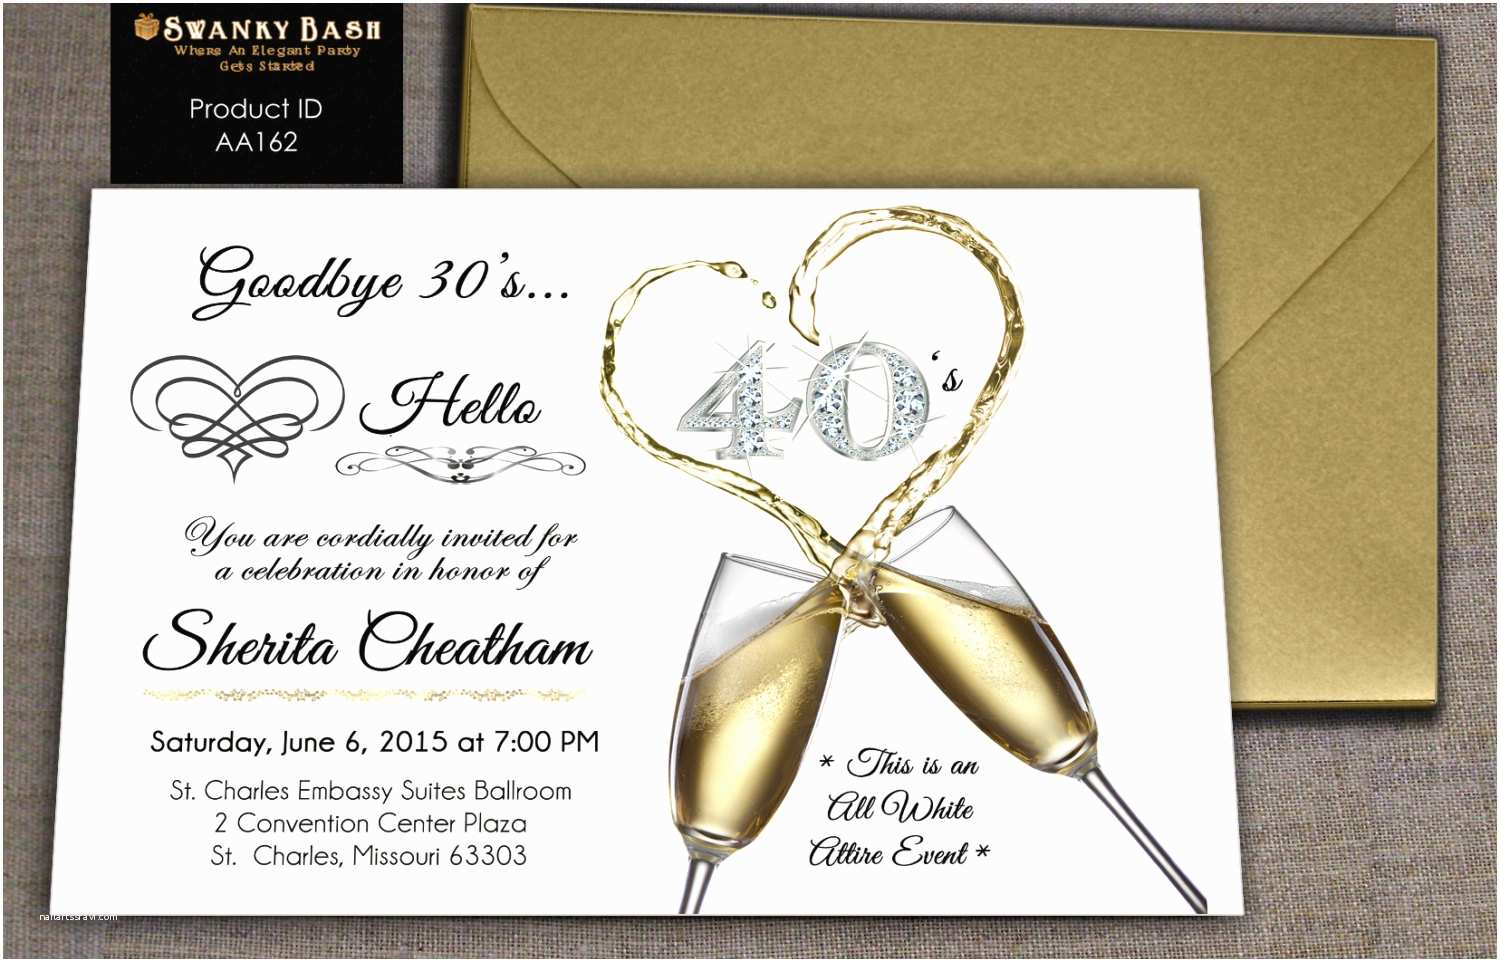 All White Party Invitations All White Party Birthday Party Custom Invitation Can Be